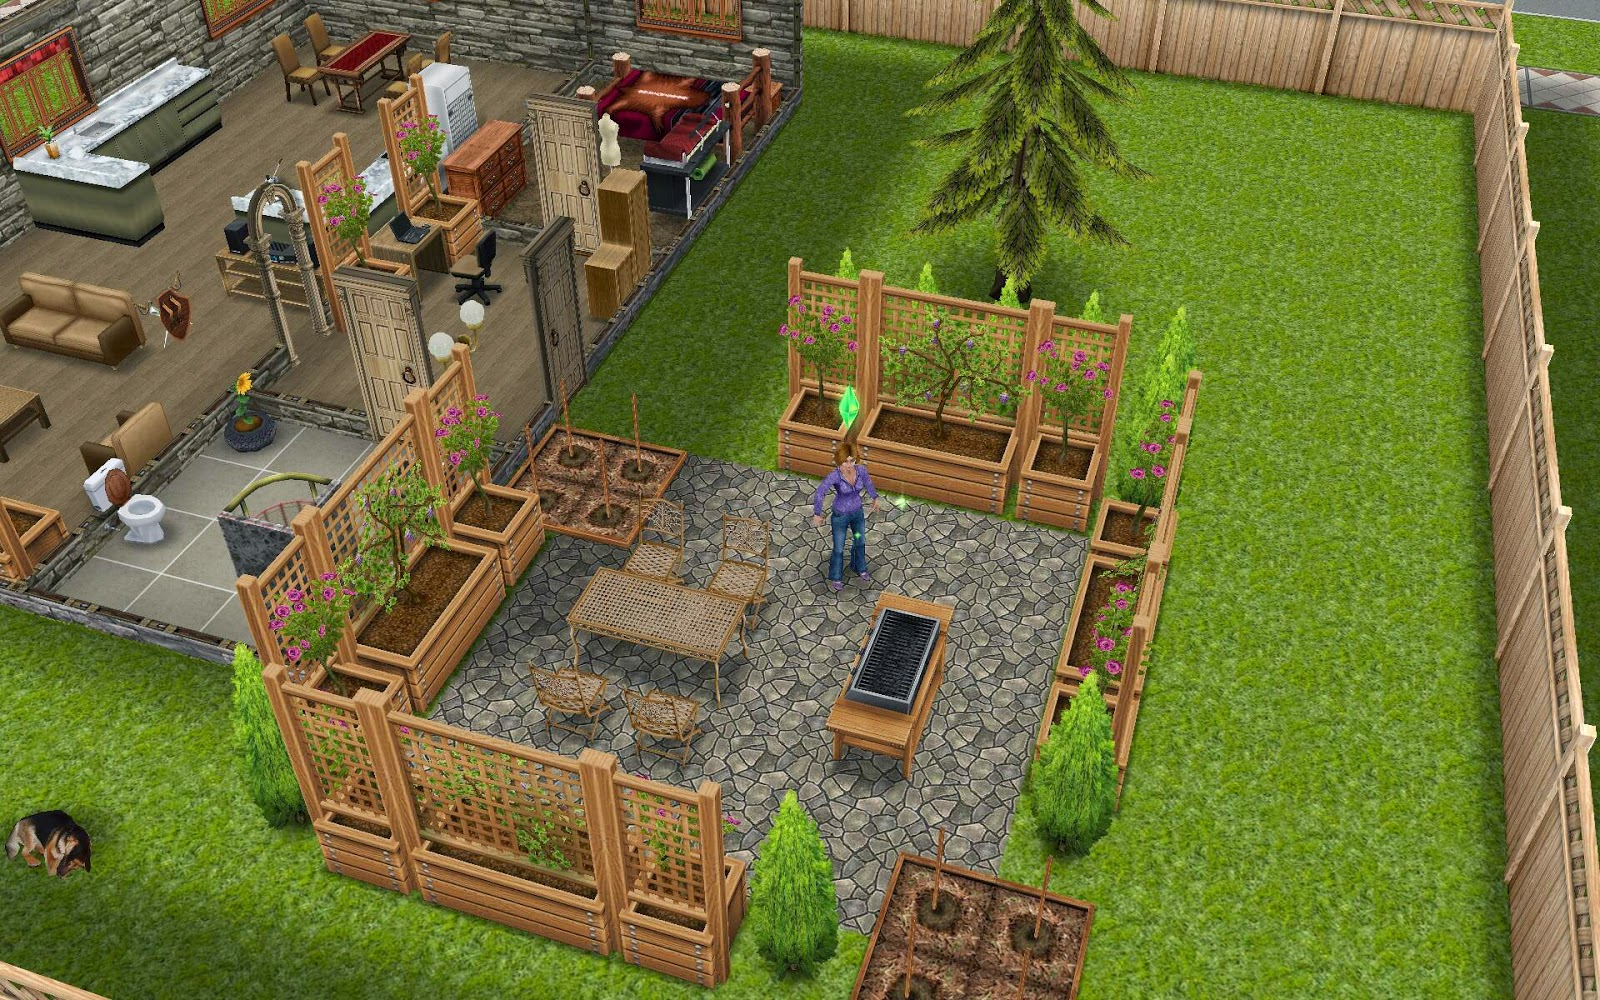 sims 2 backyard ideas. this design has been updated sims 2 backyard ideas